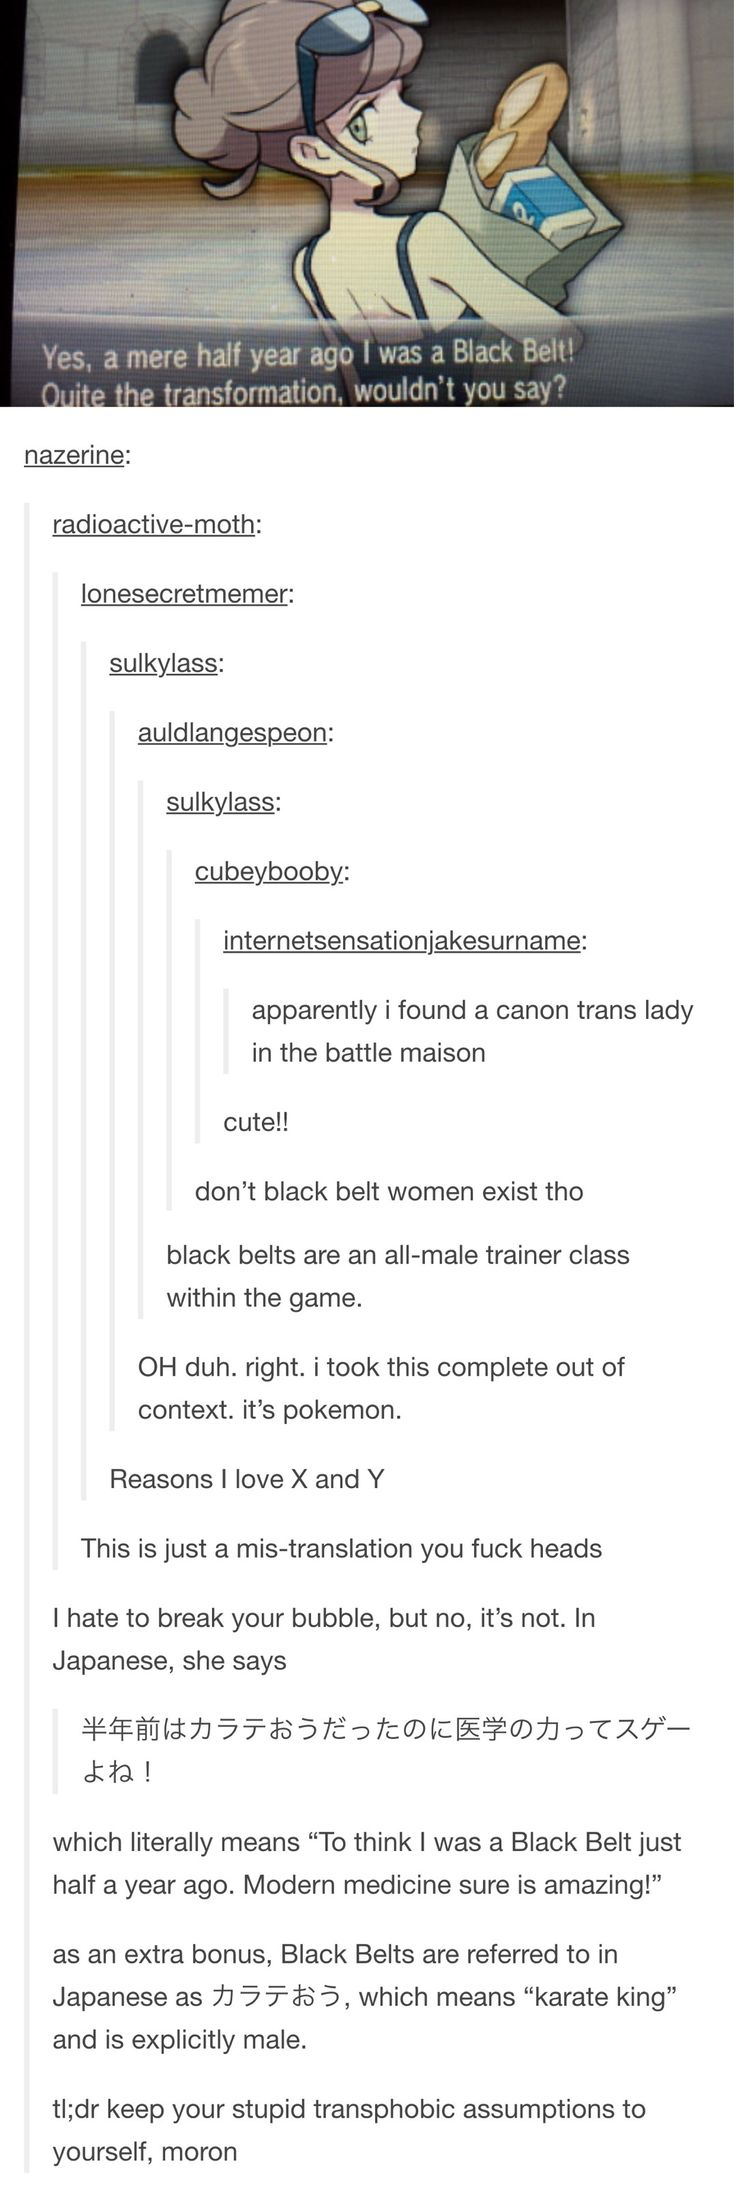 So apparently you can't have any kind of character or story without Tumblr wanting to make it all about the LGBT community. I hate Tumblr and wish that the stupid fake genders would end this is so stupid and there is no way a fucking 4 year old can decide to be trans. Liberals want people to stop labeling them but then fucking MAKE UP fake genders to label themselves and make themselves feel special. Kys<<<Omg you are so right